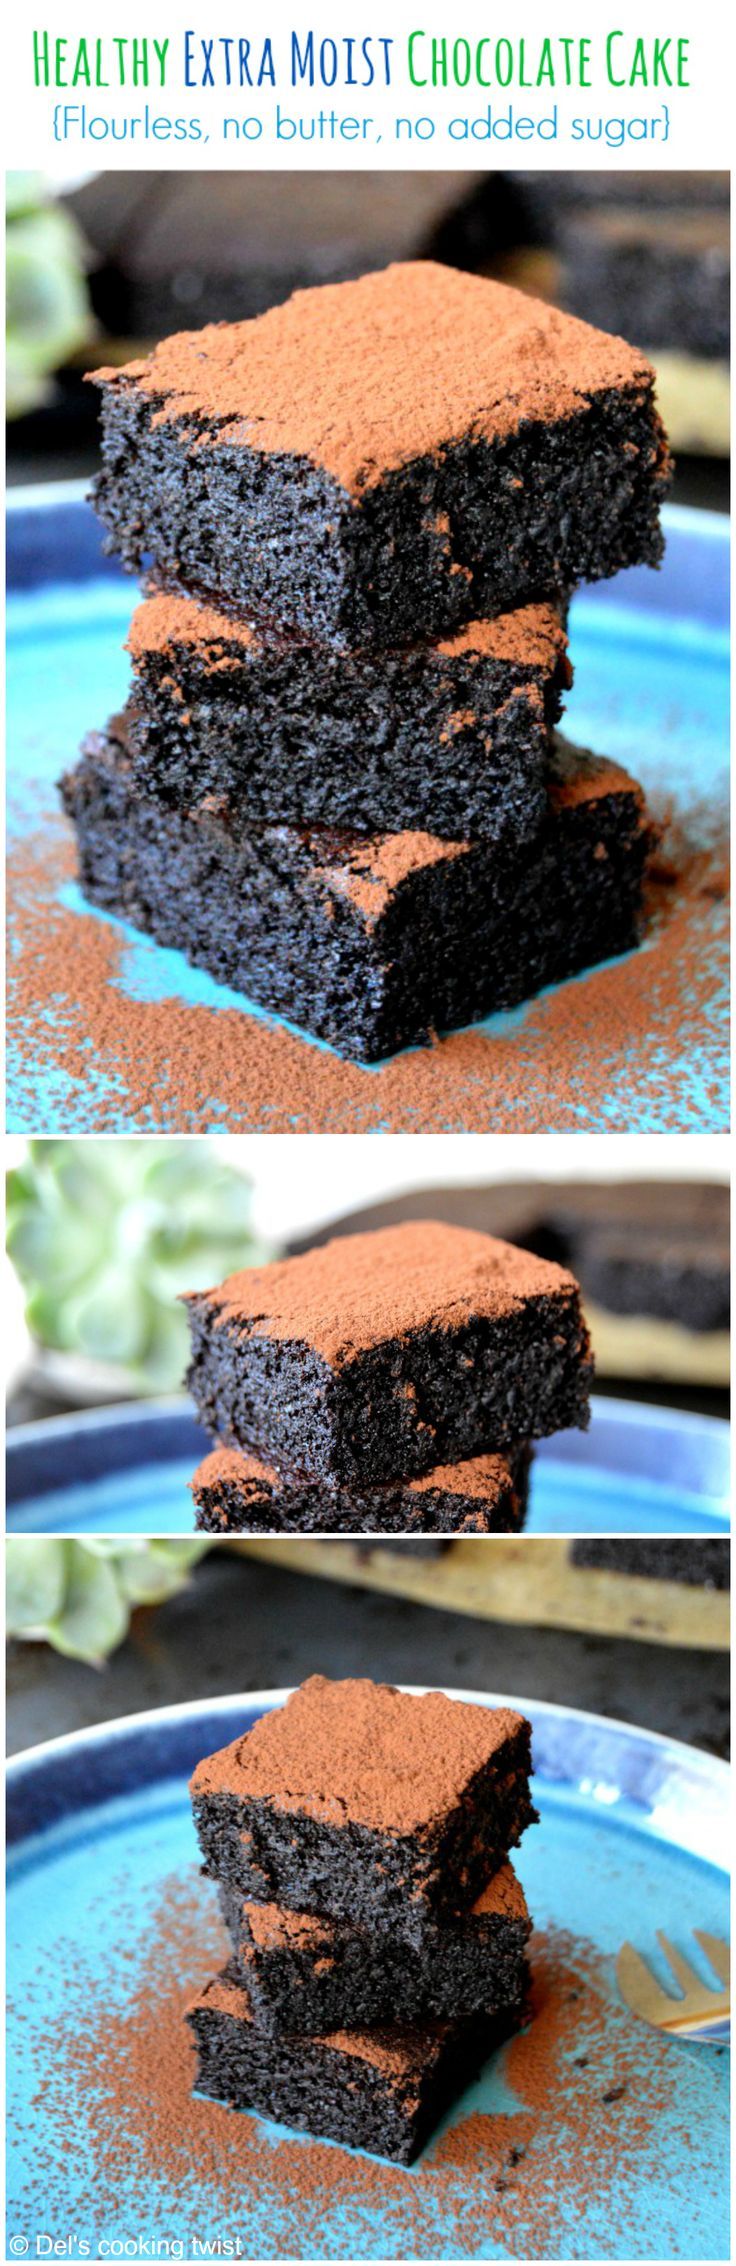 No sugar, butter or flour in this incredibly moist chocolate cake. Yes, healthy can taste like heaven! | Del's cooking twist